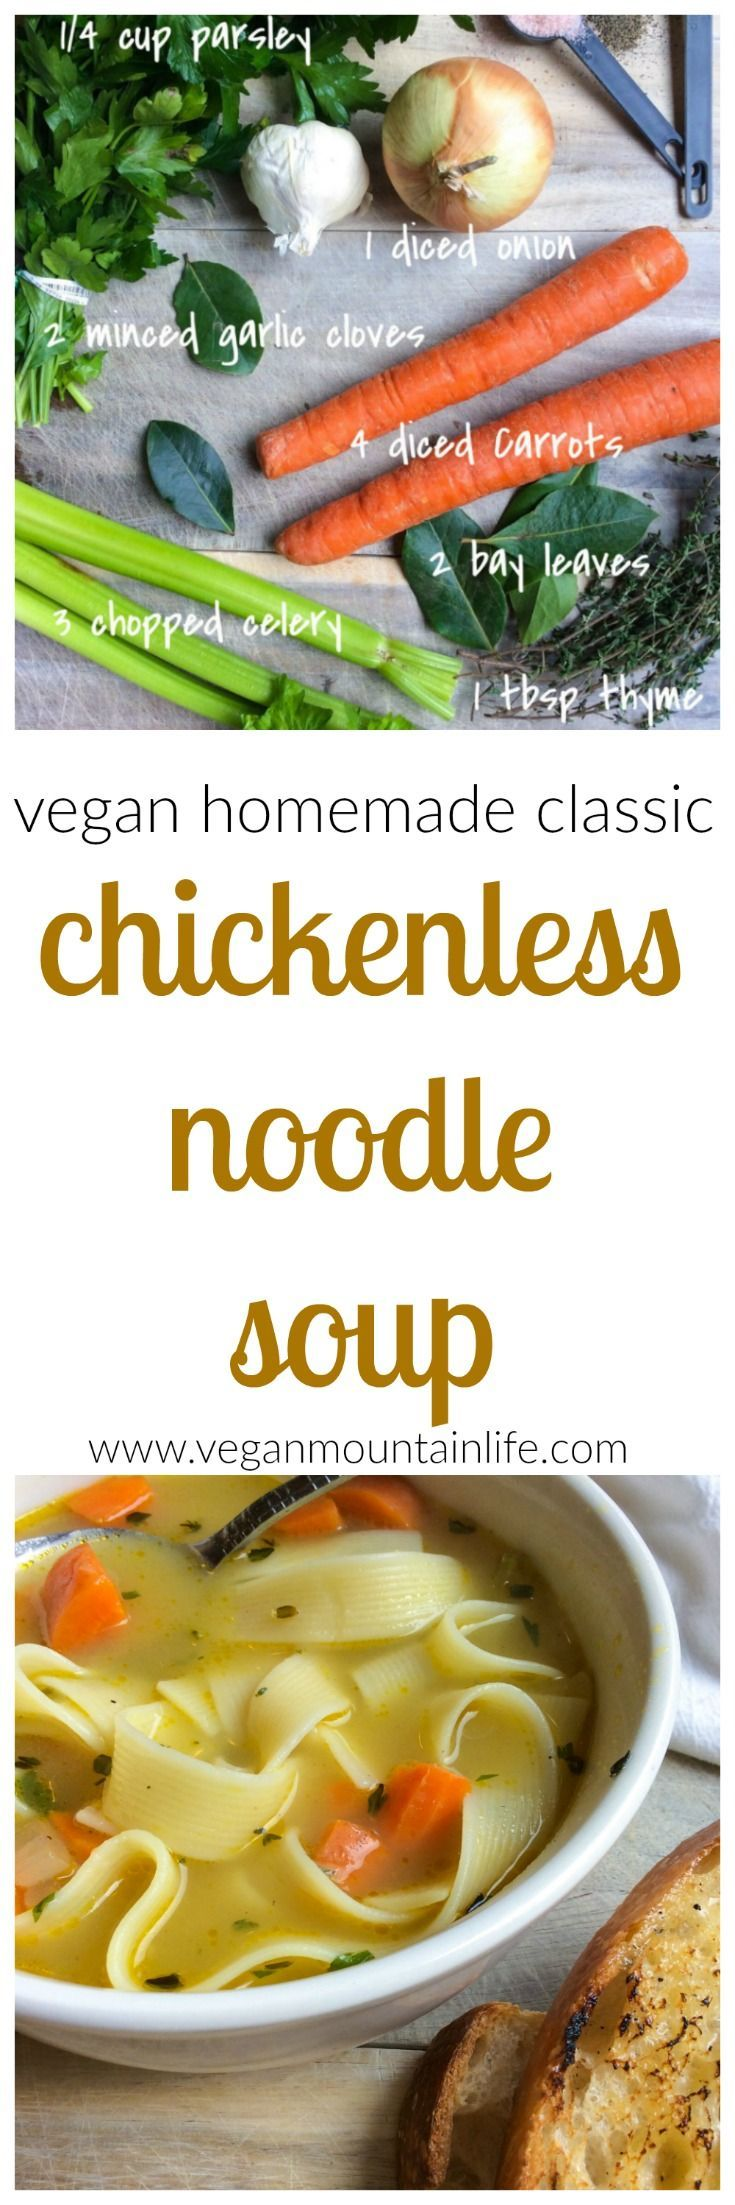 Easy, healthy, classic homemade vegan chicken noodle soup!